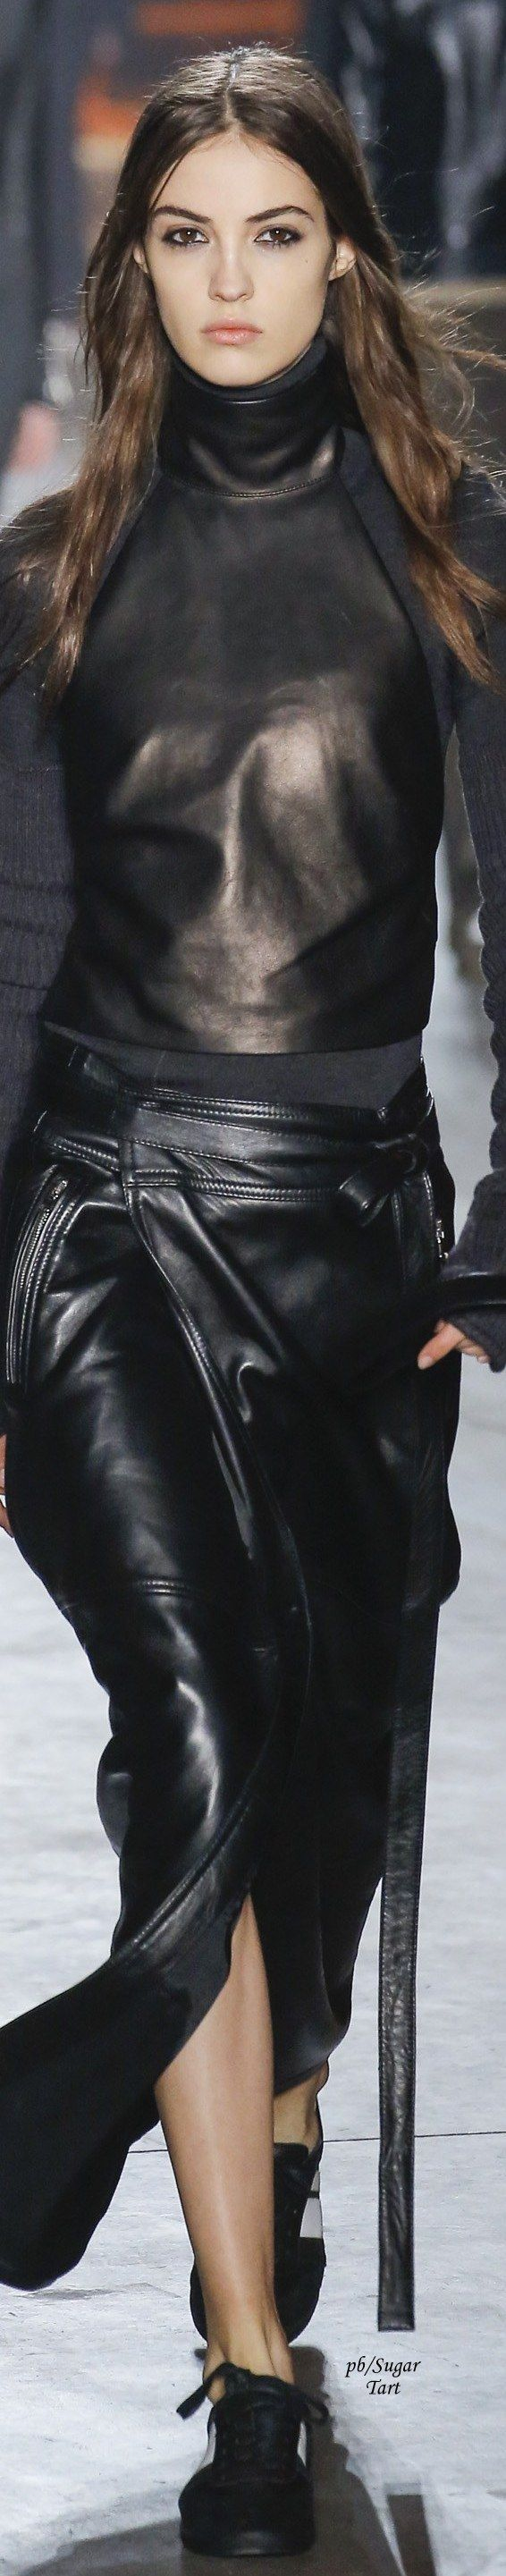 Diesel Black Gold - Fall 2017 skirts womens, skirts womens clothing for sale, women's skirts and dresses, women's skirts australia, women's skirts below knee. #ad